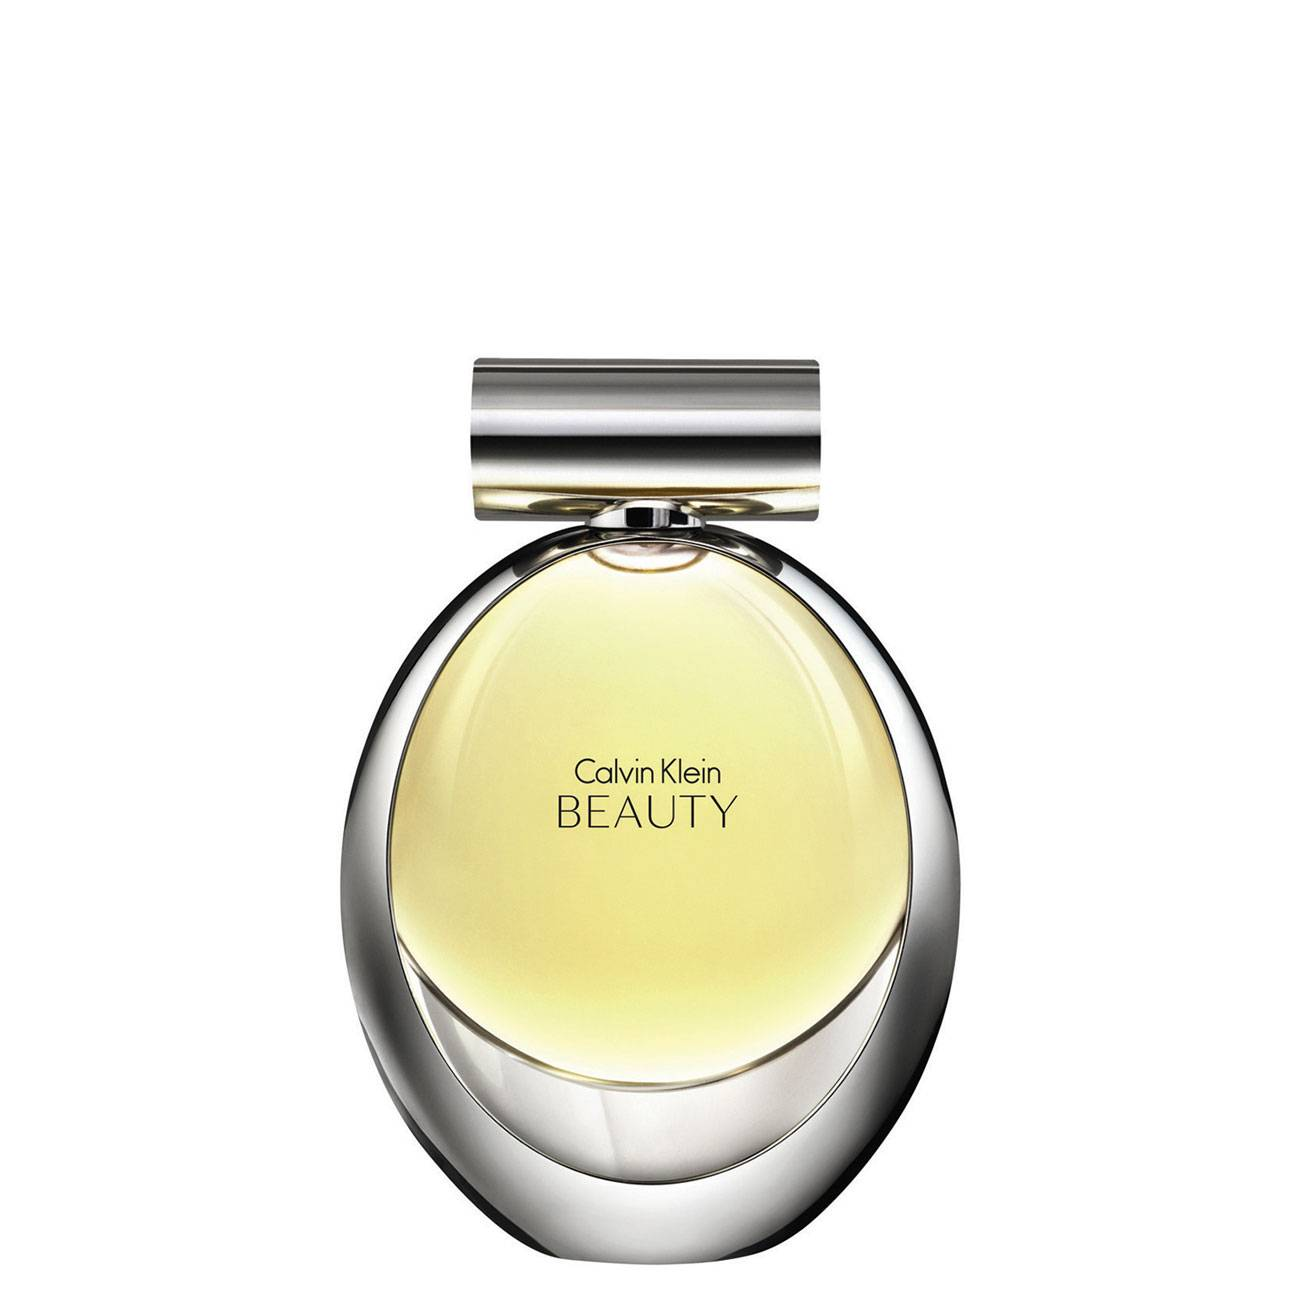 Beauty 50ml